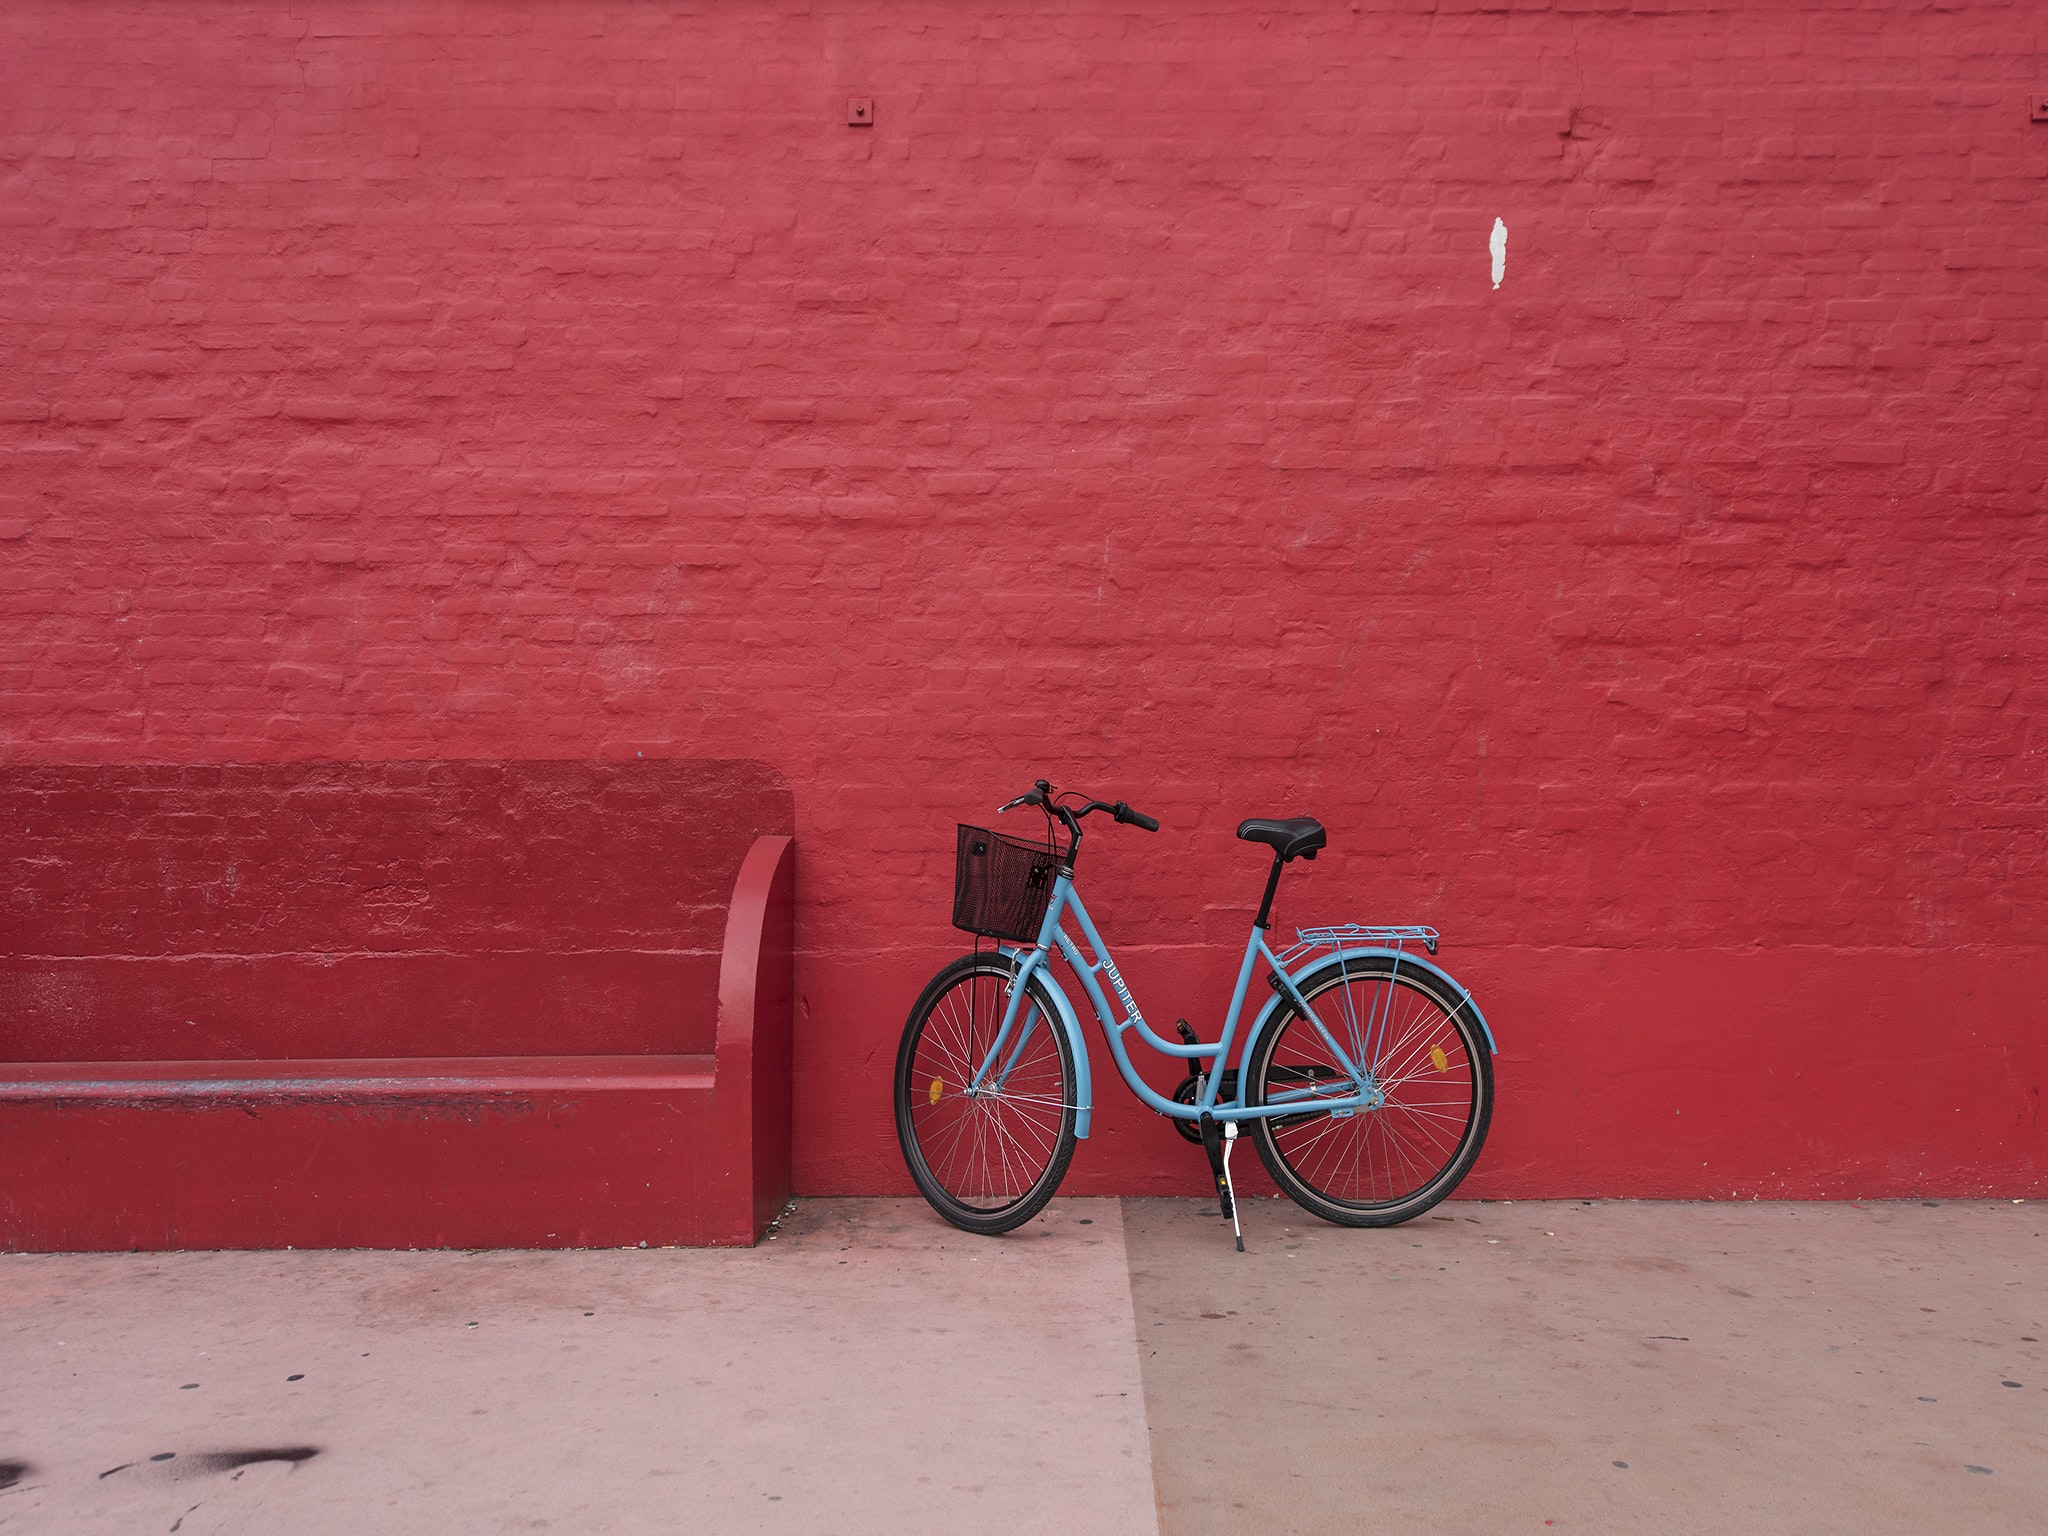 blue step-through bicycle park beside of red bench